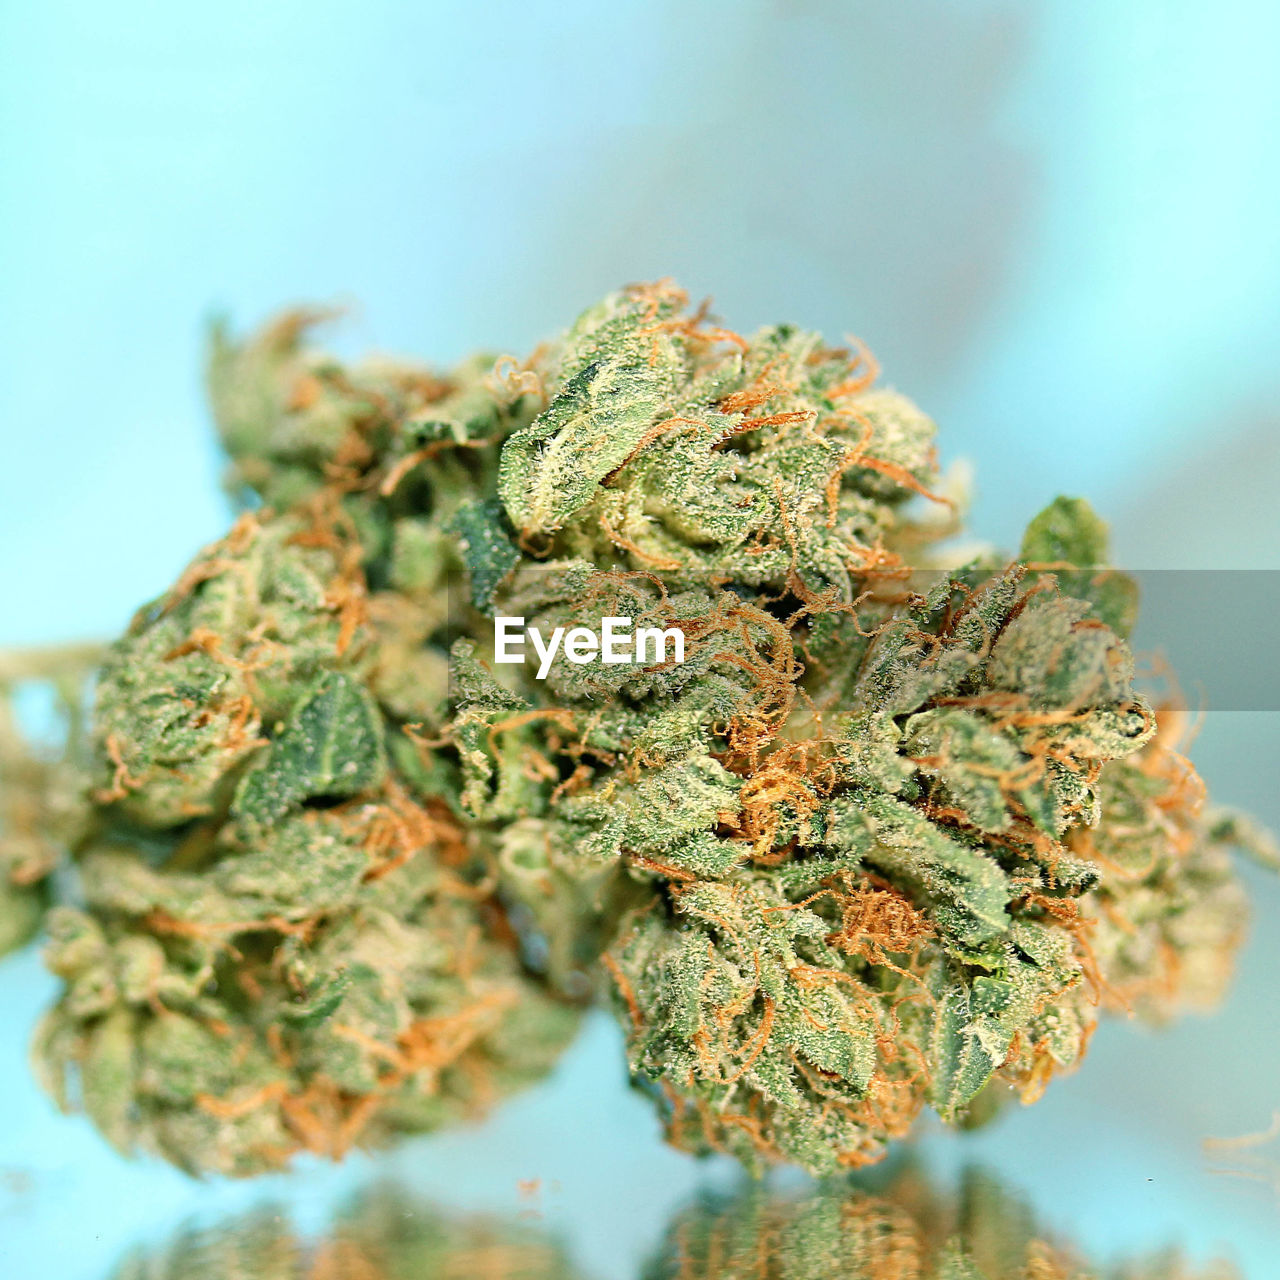 marijuana - herbal cannabis, close-up, cannabis plant, healthcare and medicine, selective focus, plant, narcotic, cannabis - narcotic, indoors, no people, medicine, herb, alternative medicine, food and drink, herbal medicine, medical cannabis, green color, social issues, recreational drug, lichen